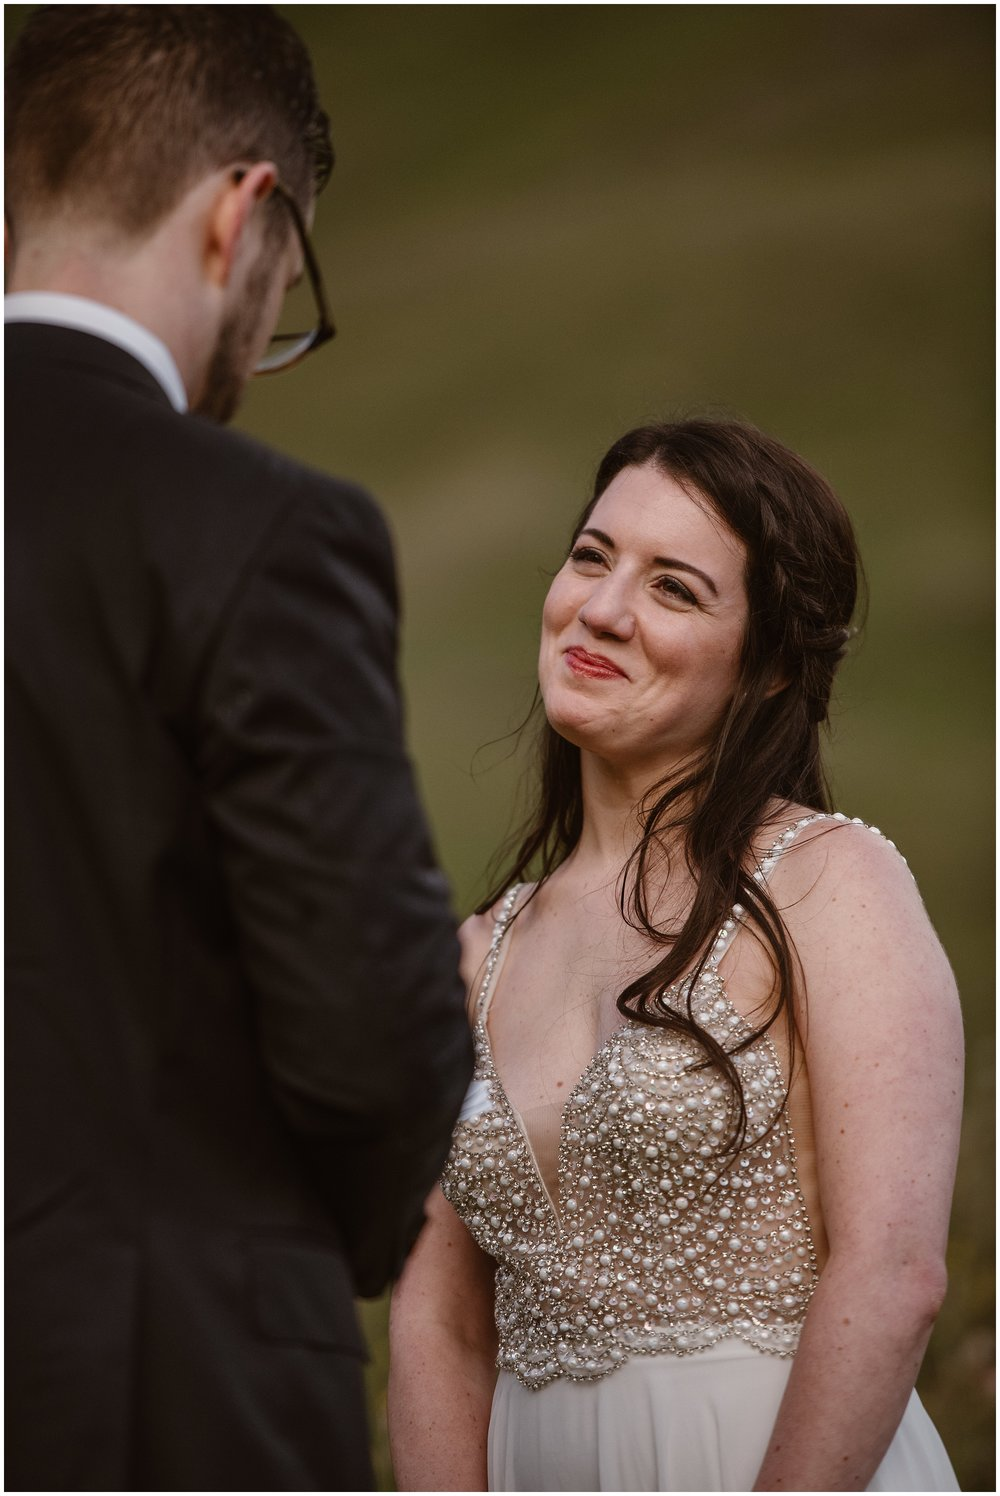 The camera zooms in on Katie, the bride, staring at her groom reading his vows to her. Katie is in a white and pearl-beaded wedding dress for her elopement ceremony as part of her 4x4 wedding.